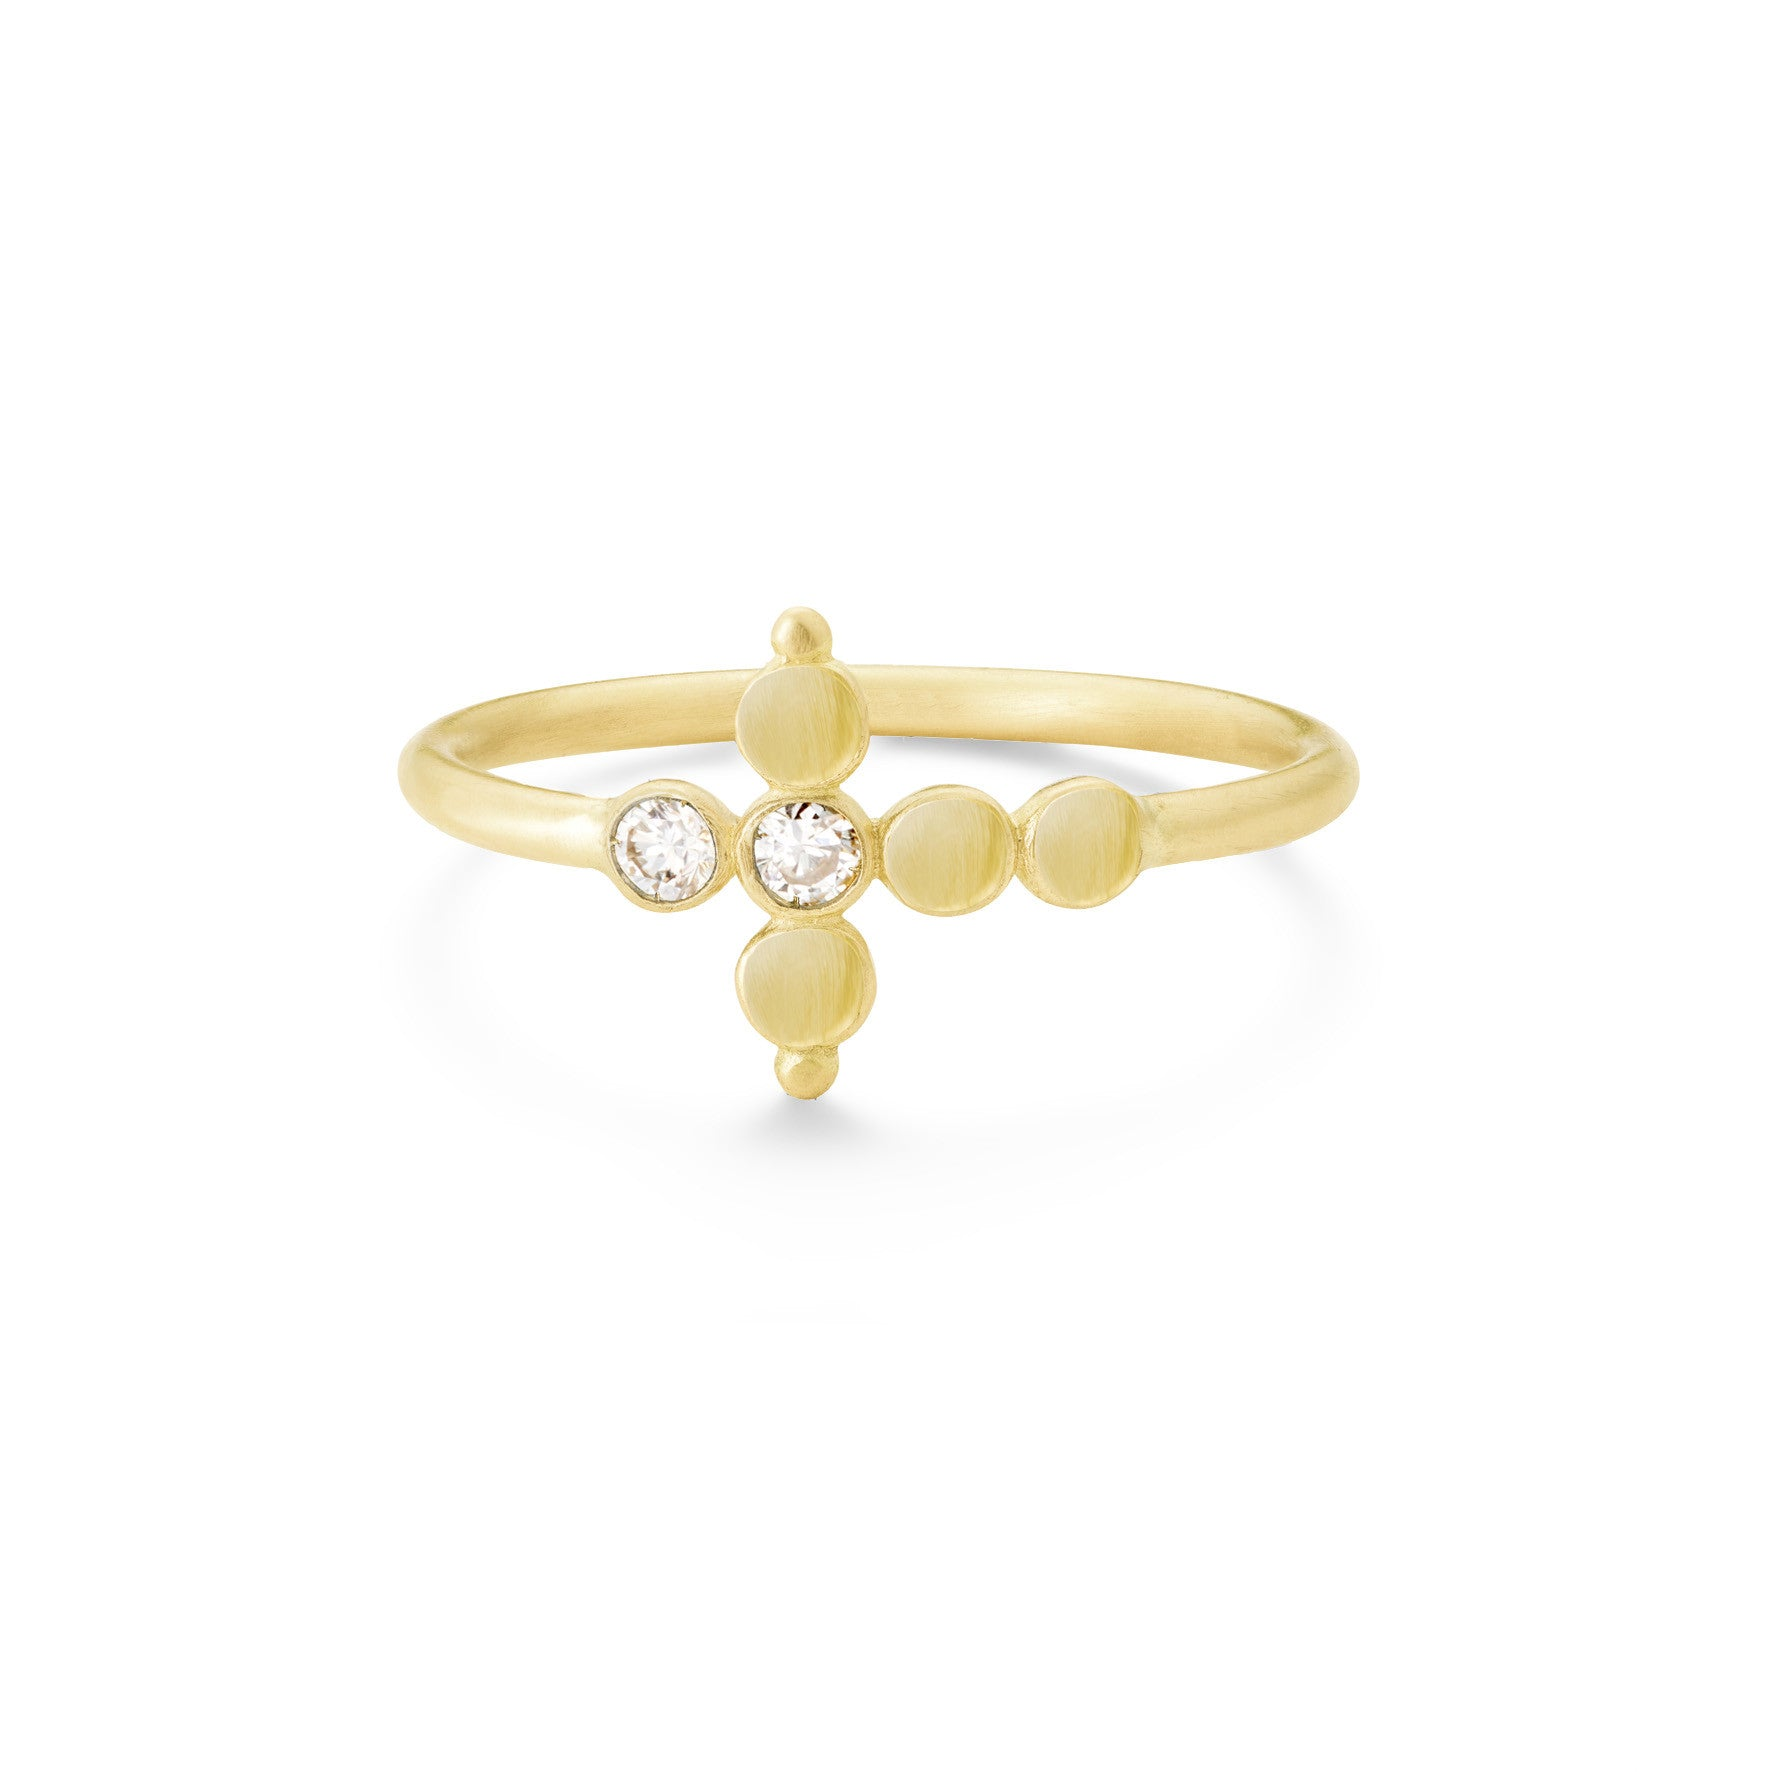 Bague Petit AA Or jaune et Diamants (exclusivité internet)